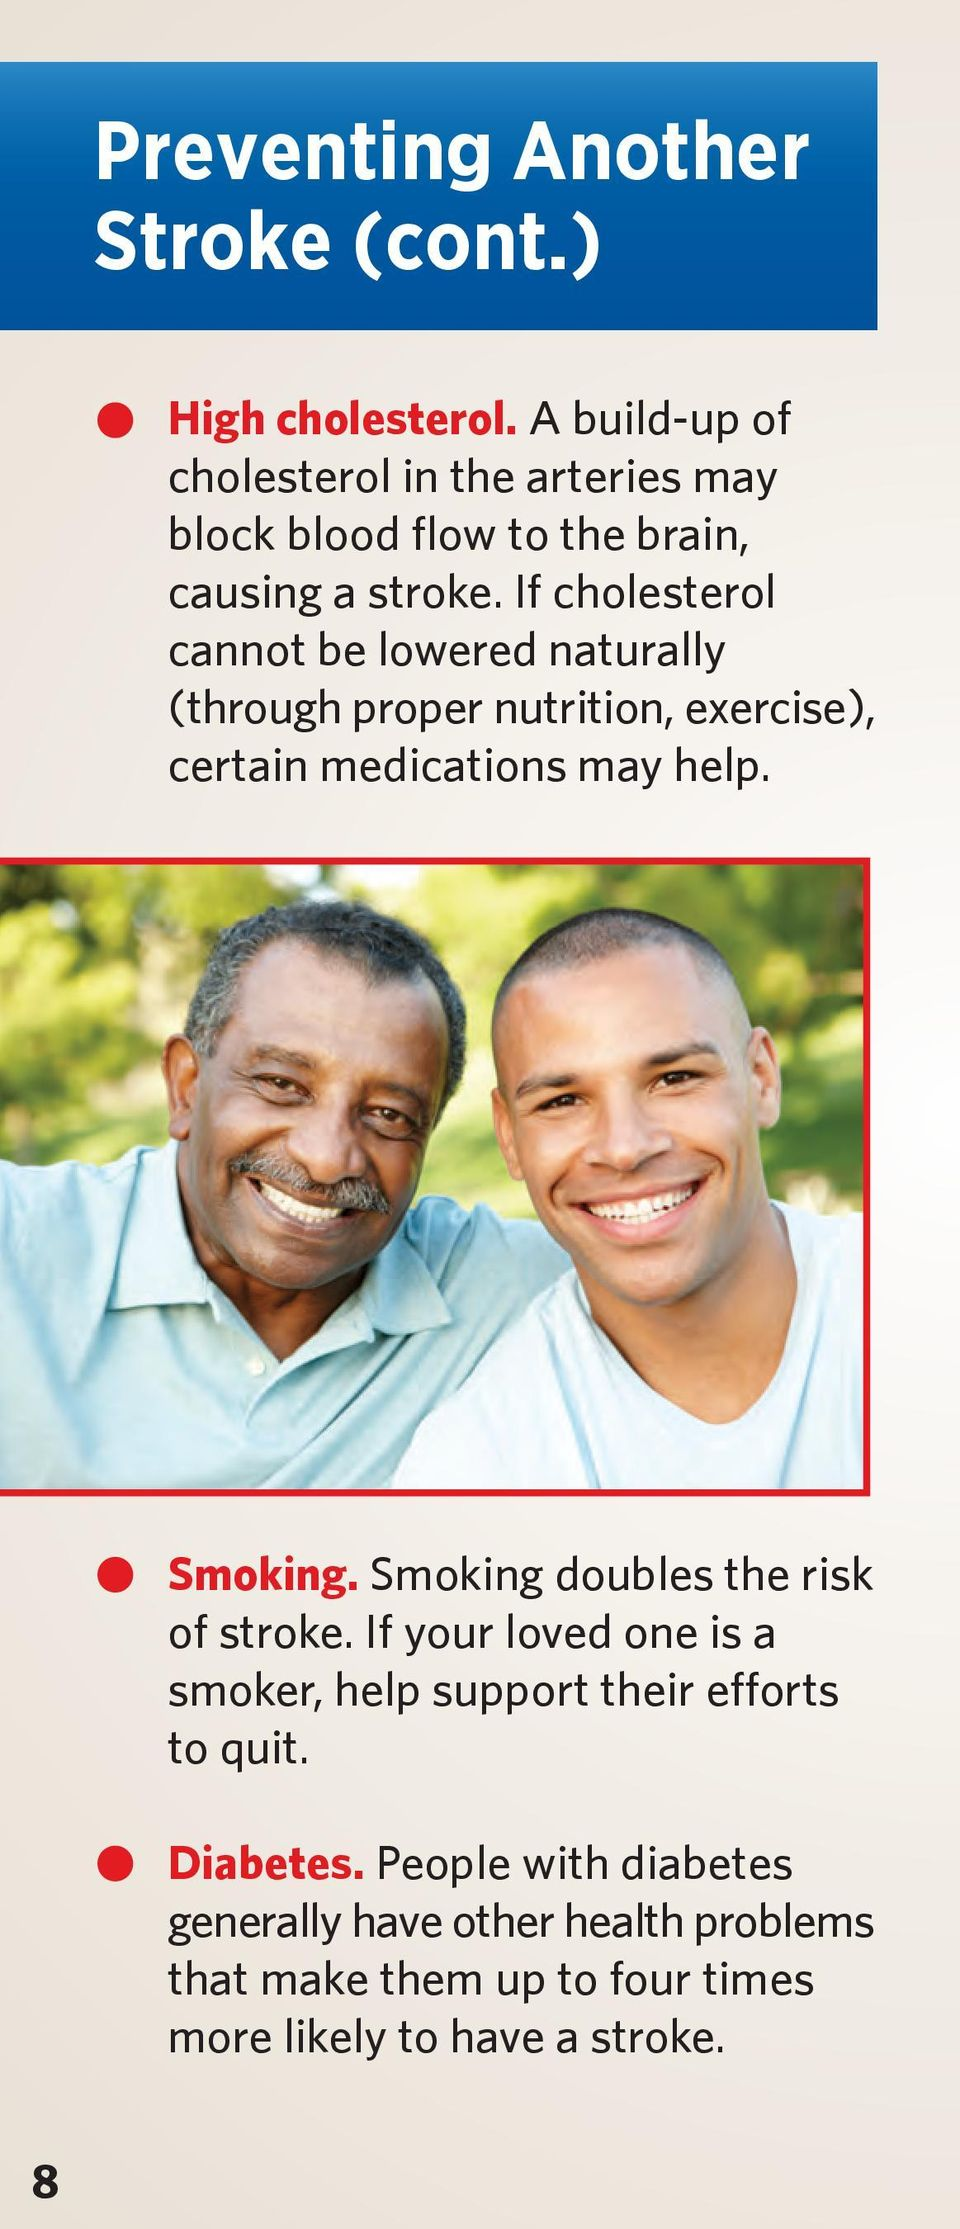 If cholesterol cannot be lowered naturally (through proper nutrition, exercise), certain medications may help. Smoking.